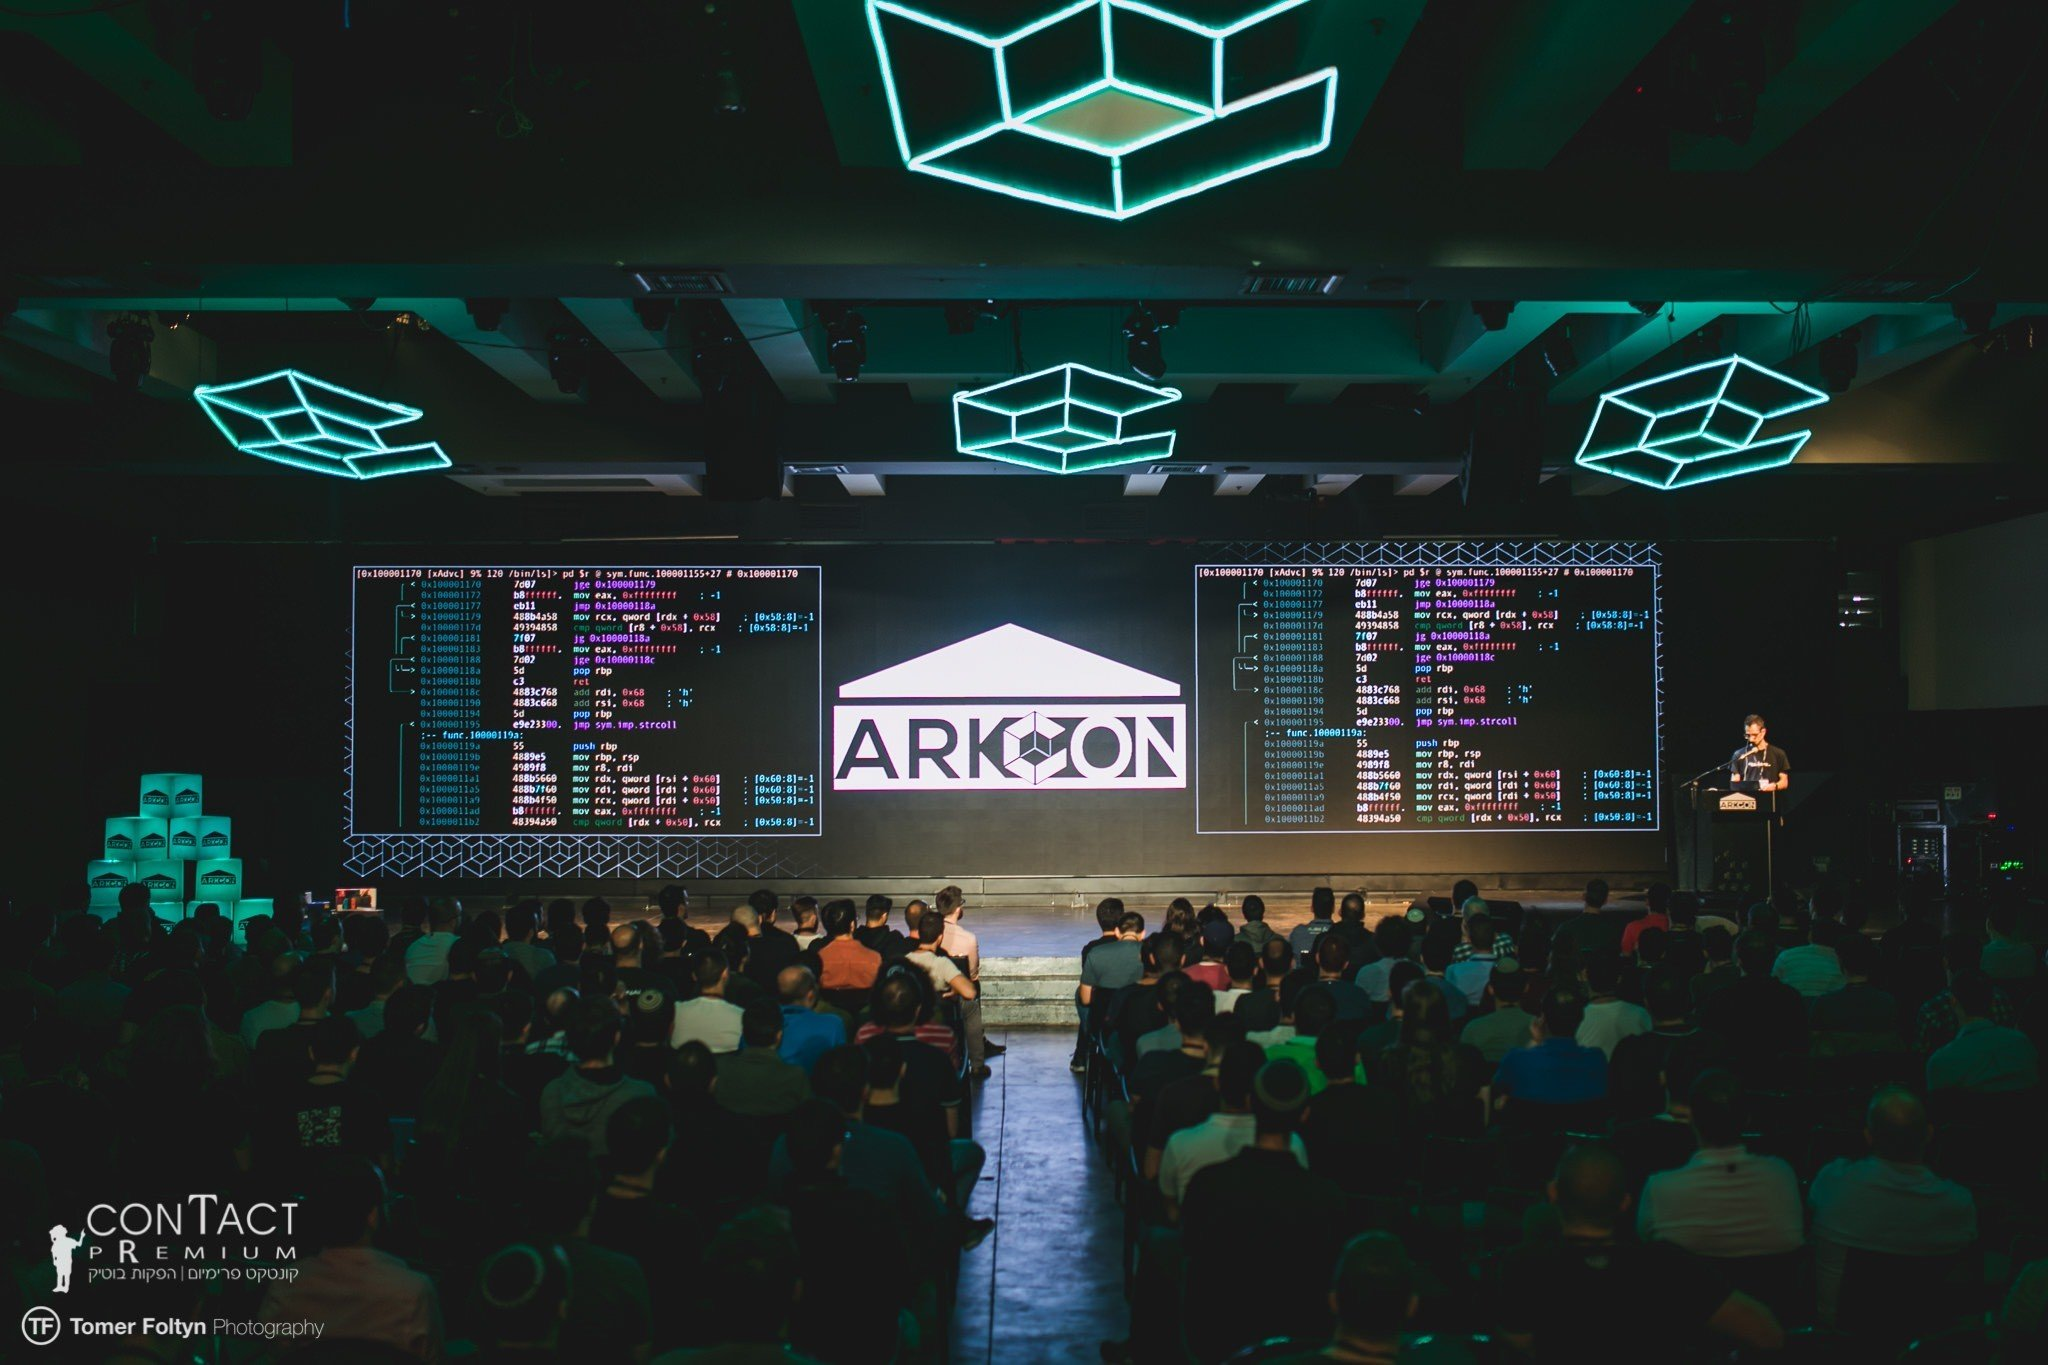 ArkCon 2019 Cybersecurity Event